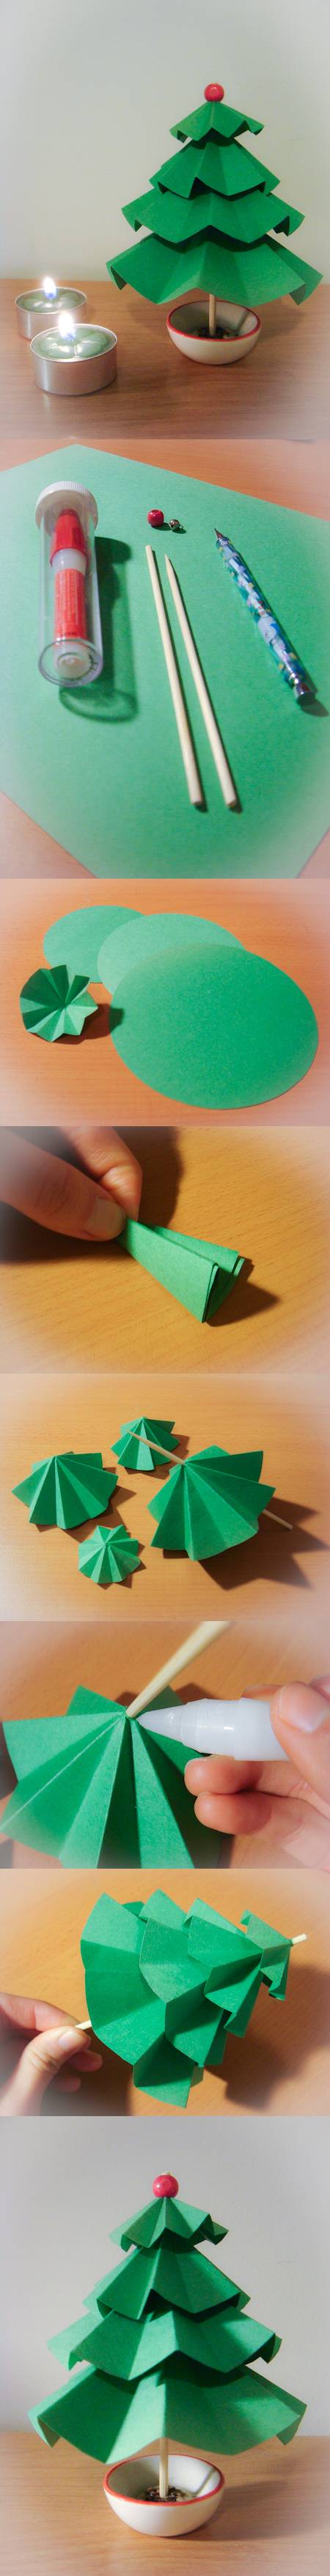 How To Make Simple Paper